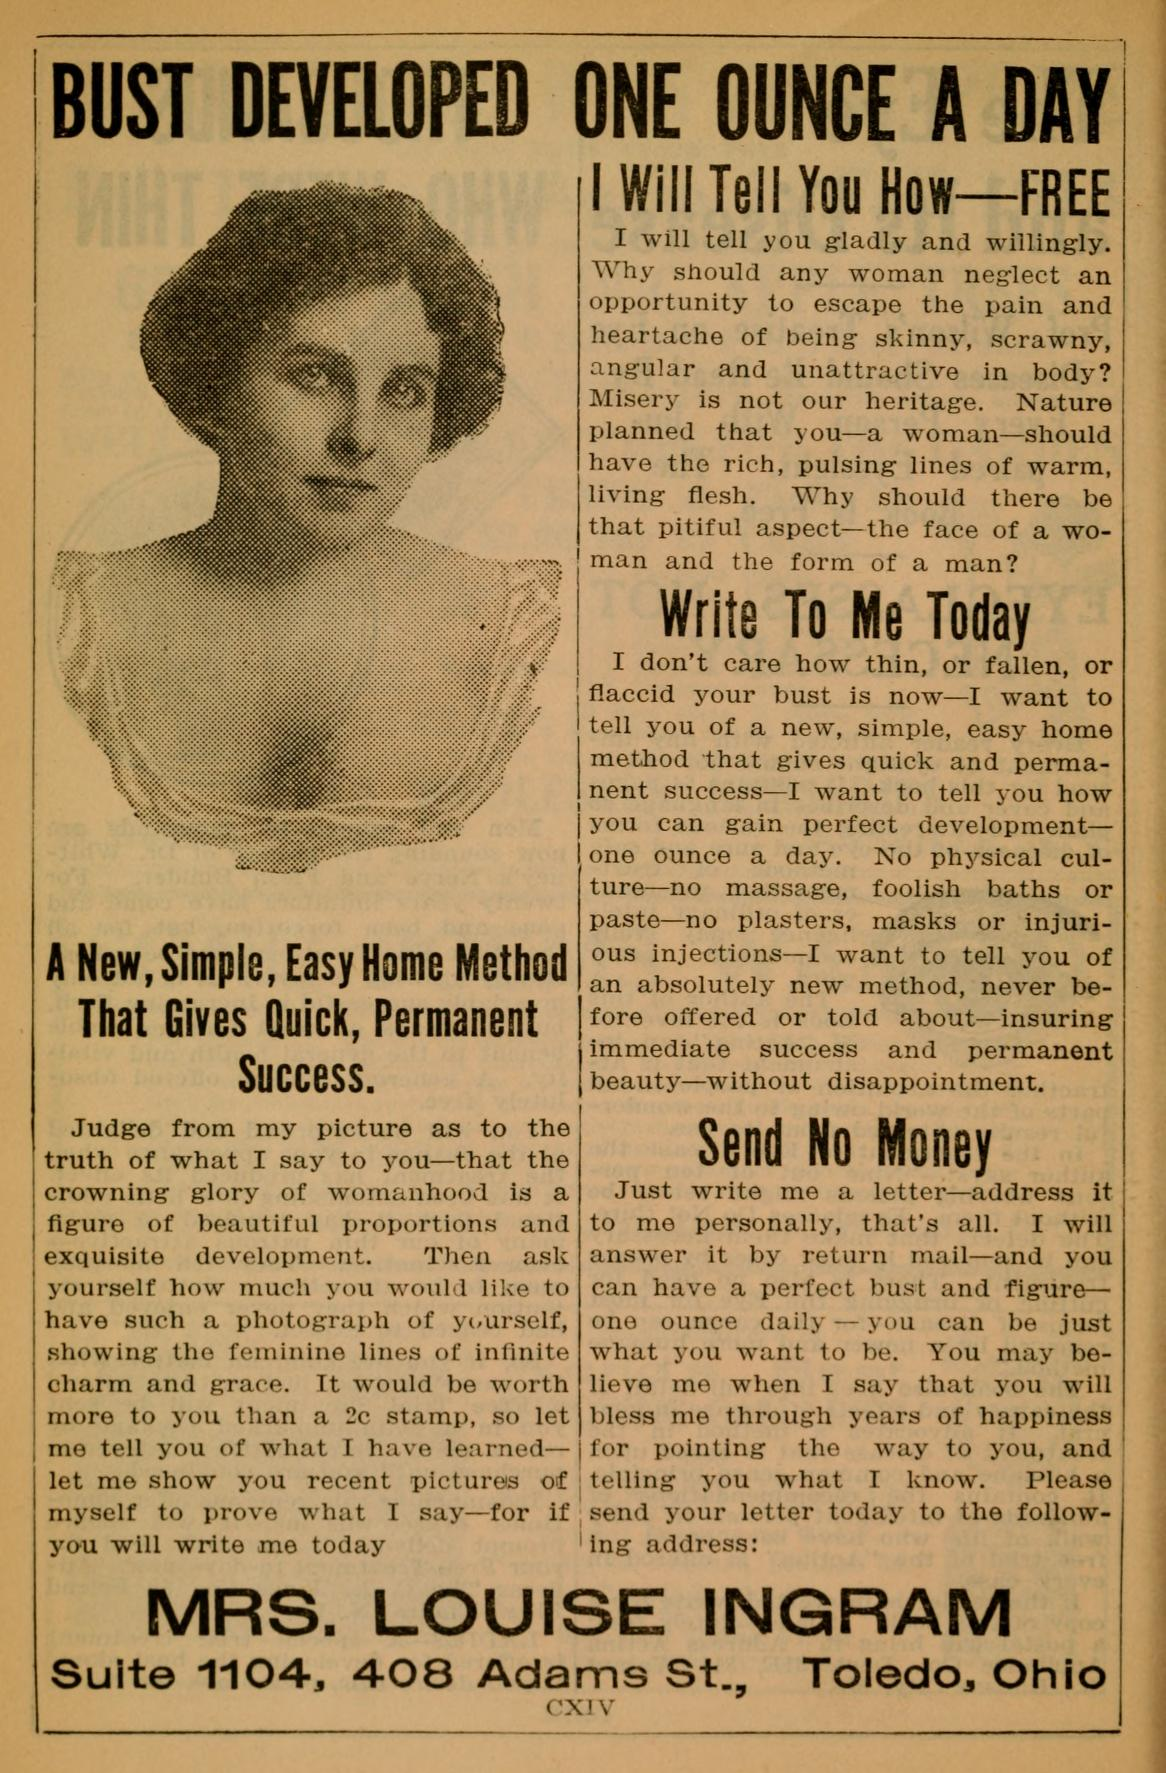 Increase Your Bust Ad - 1915